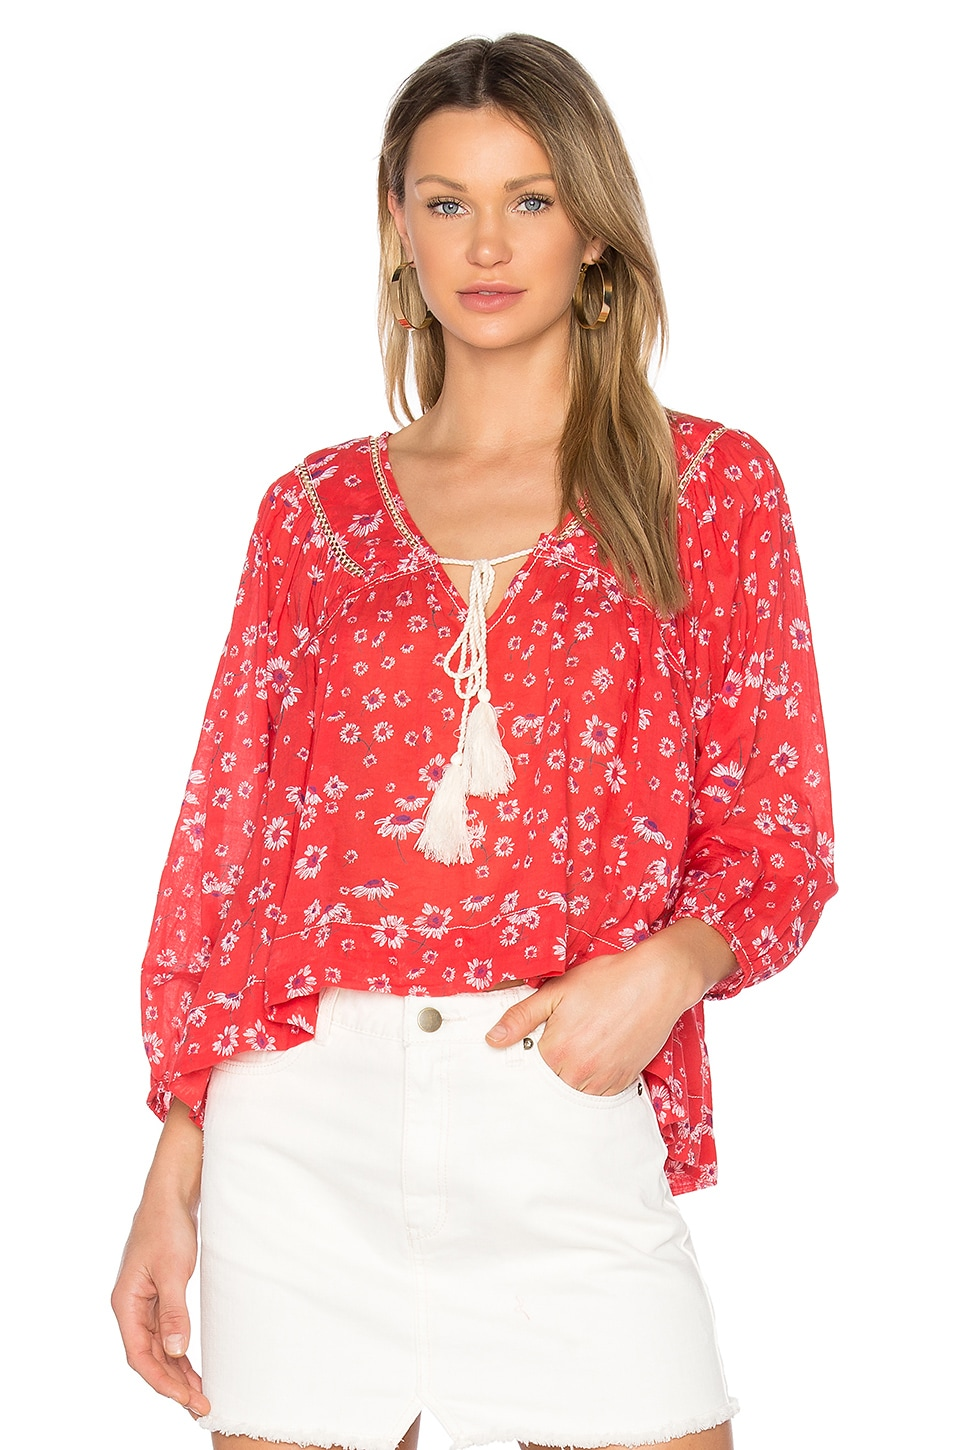 Never a Dull Moment Blouse by Free People